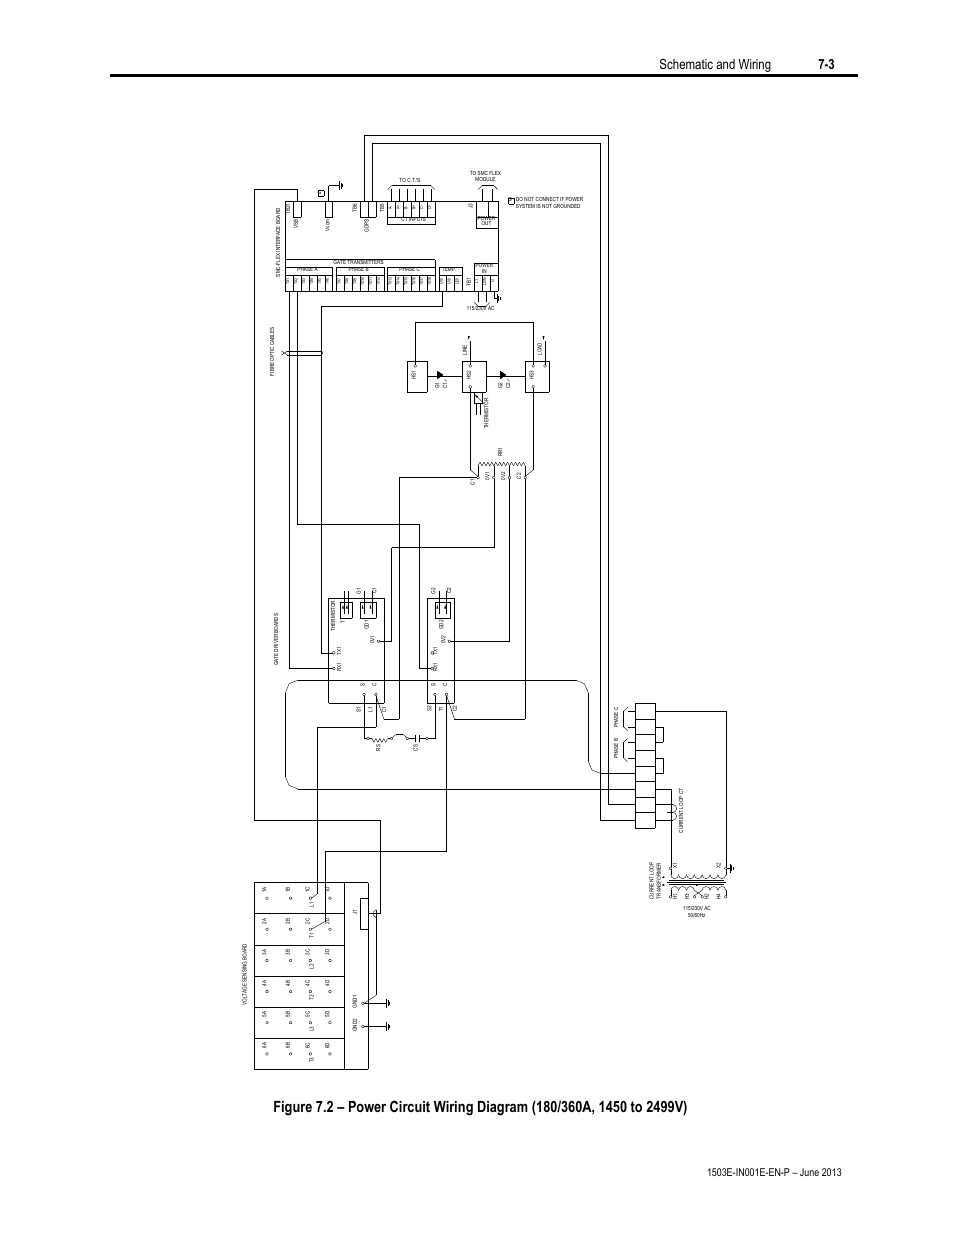 medium resolution of 1998 ford taurus fuse box diagram